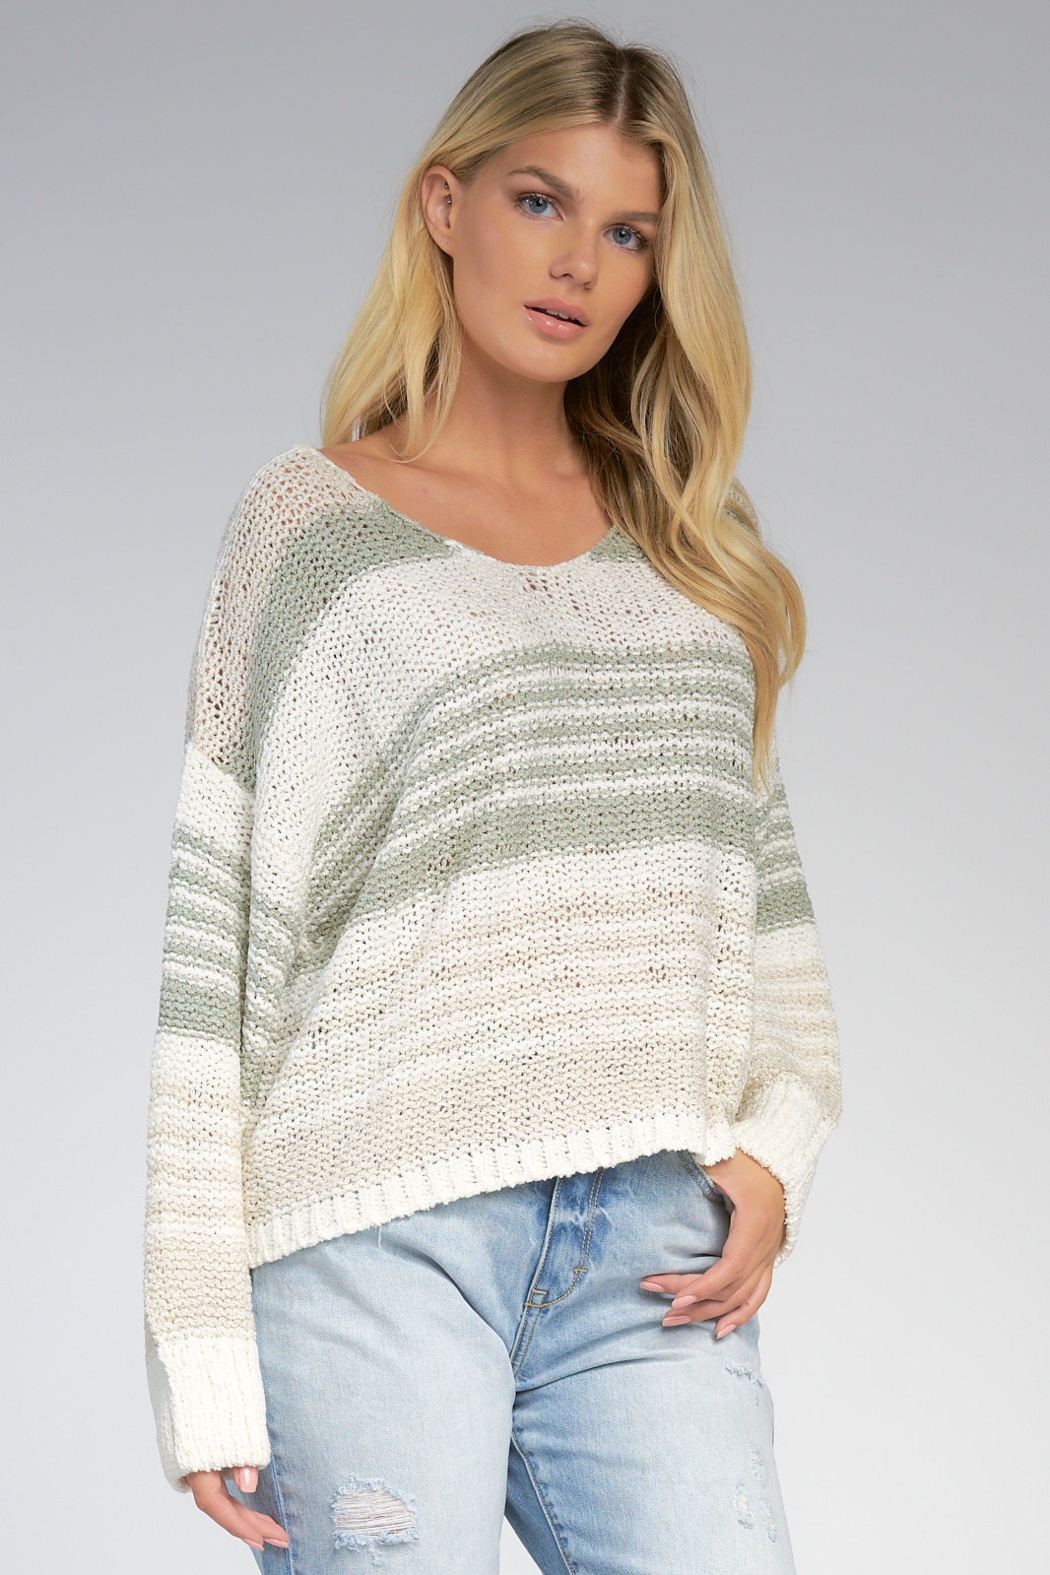 Elan  V-Neck Sweater - Main Image